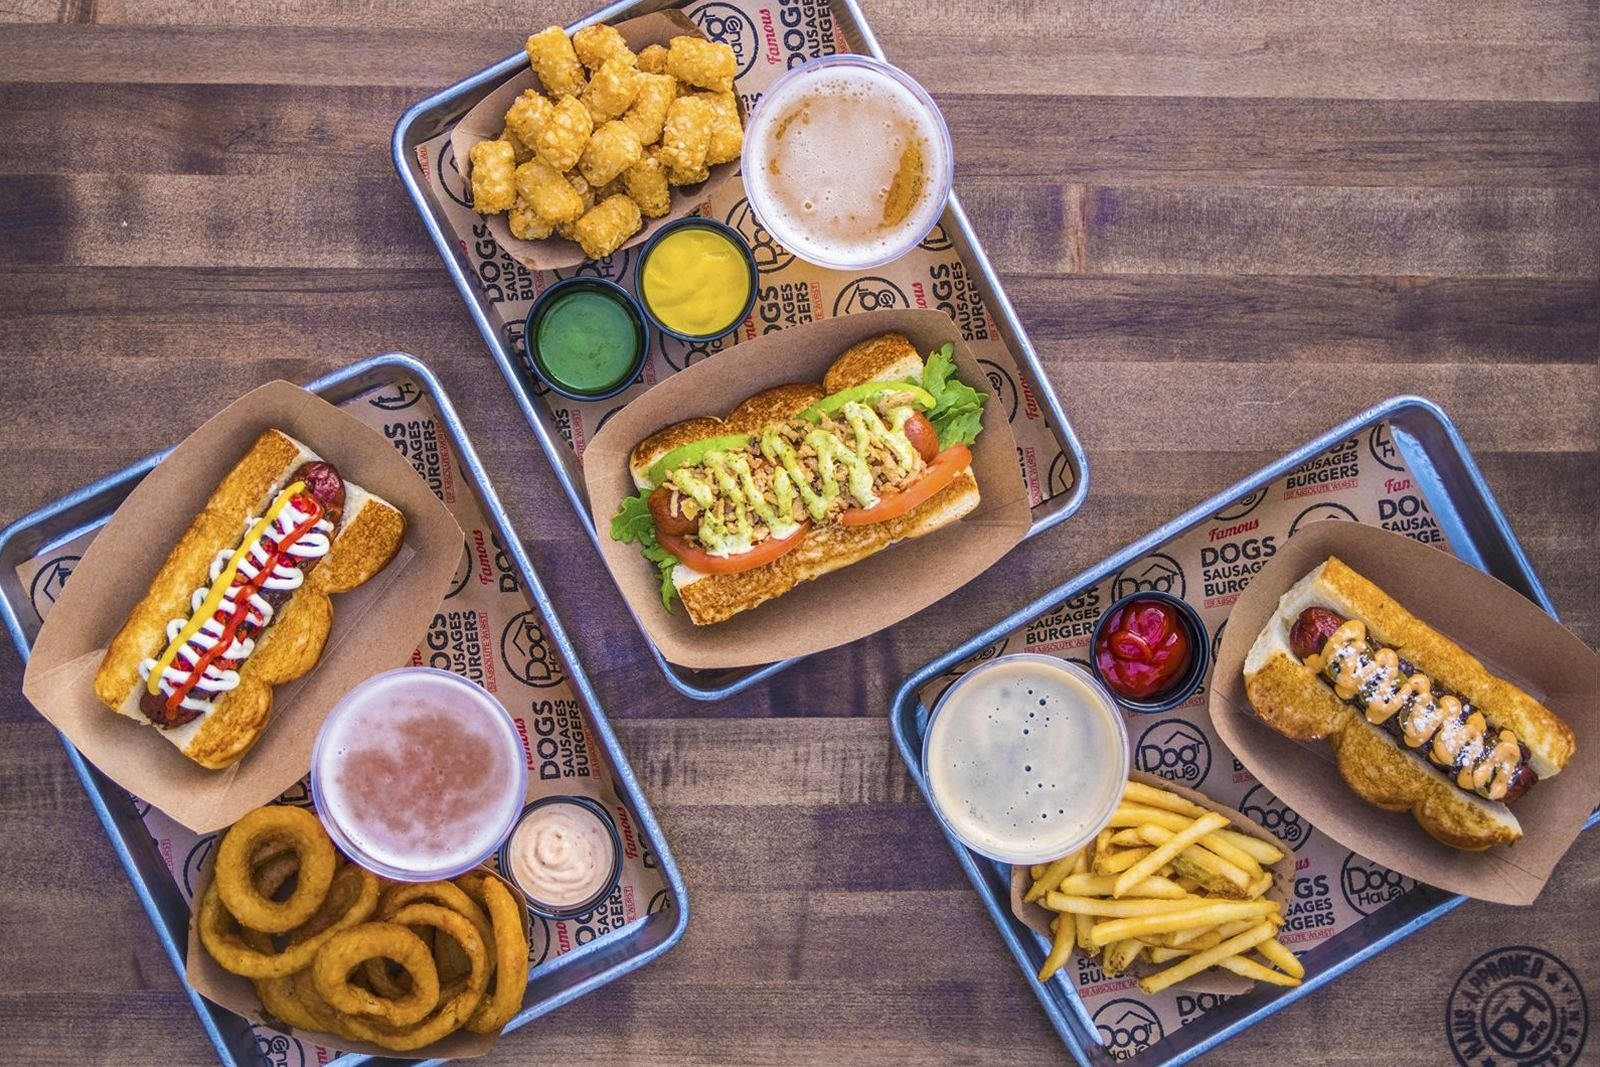 Dog Haus Celebrates the Grand Opening of Its First Chino Hills Location